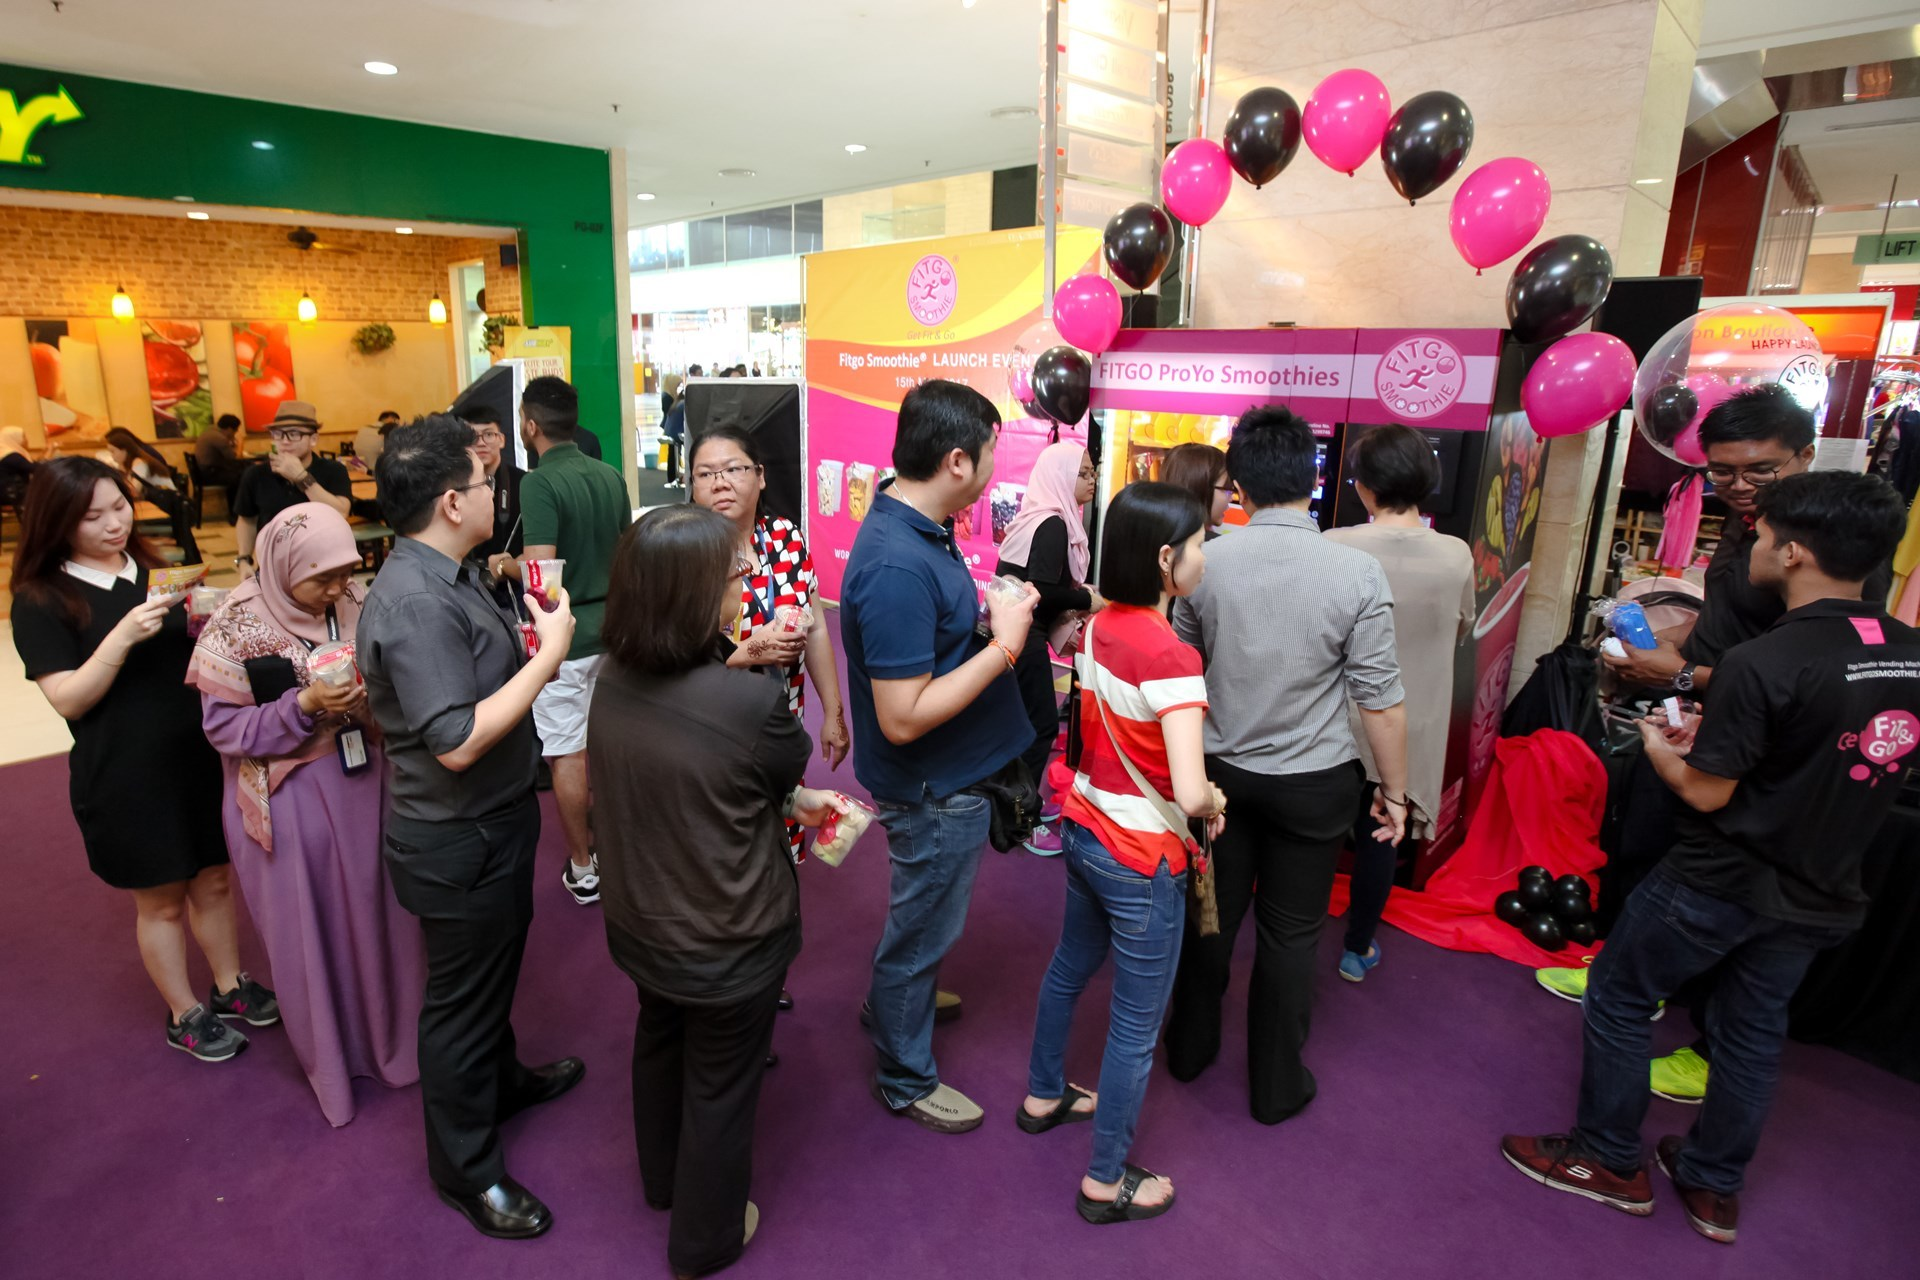 Fitgo Smoothie Launching Promo